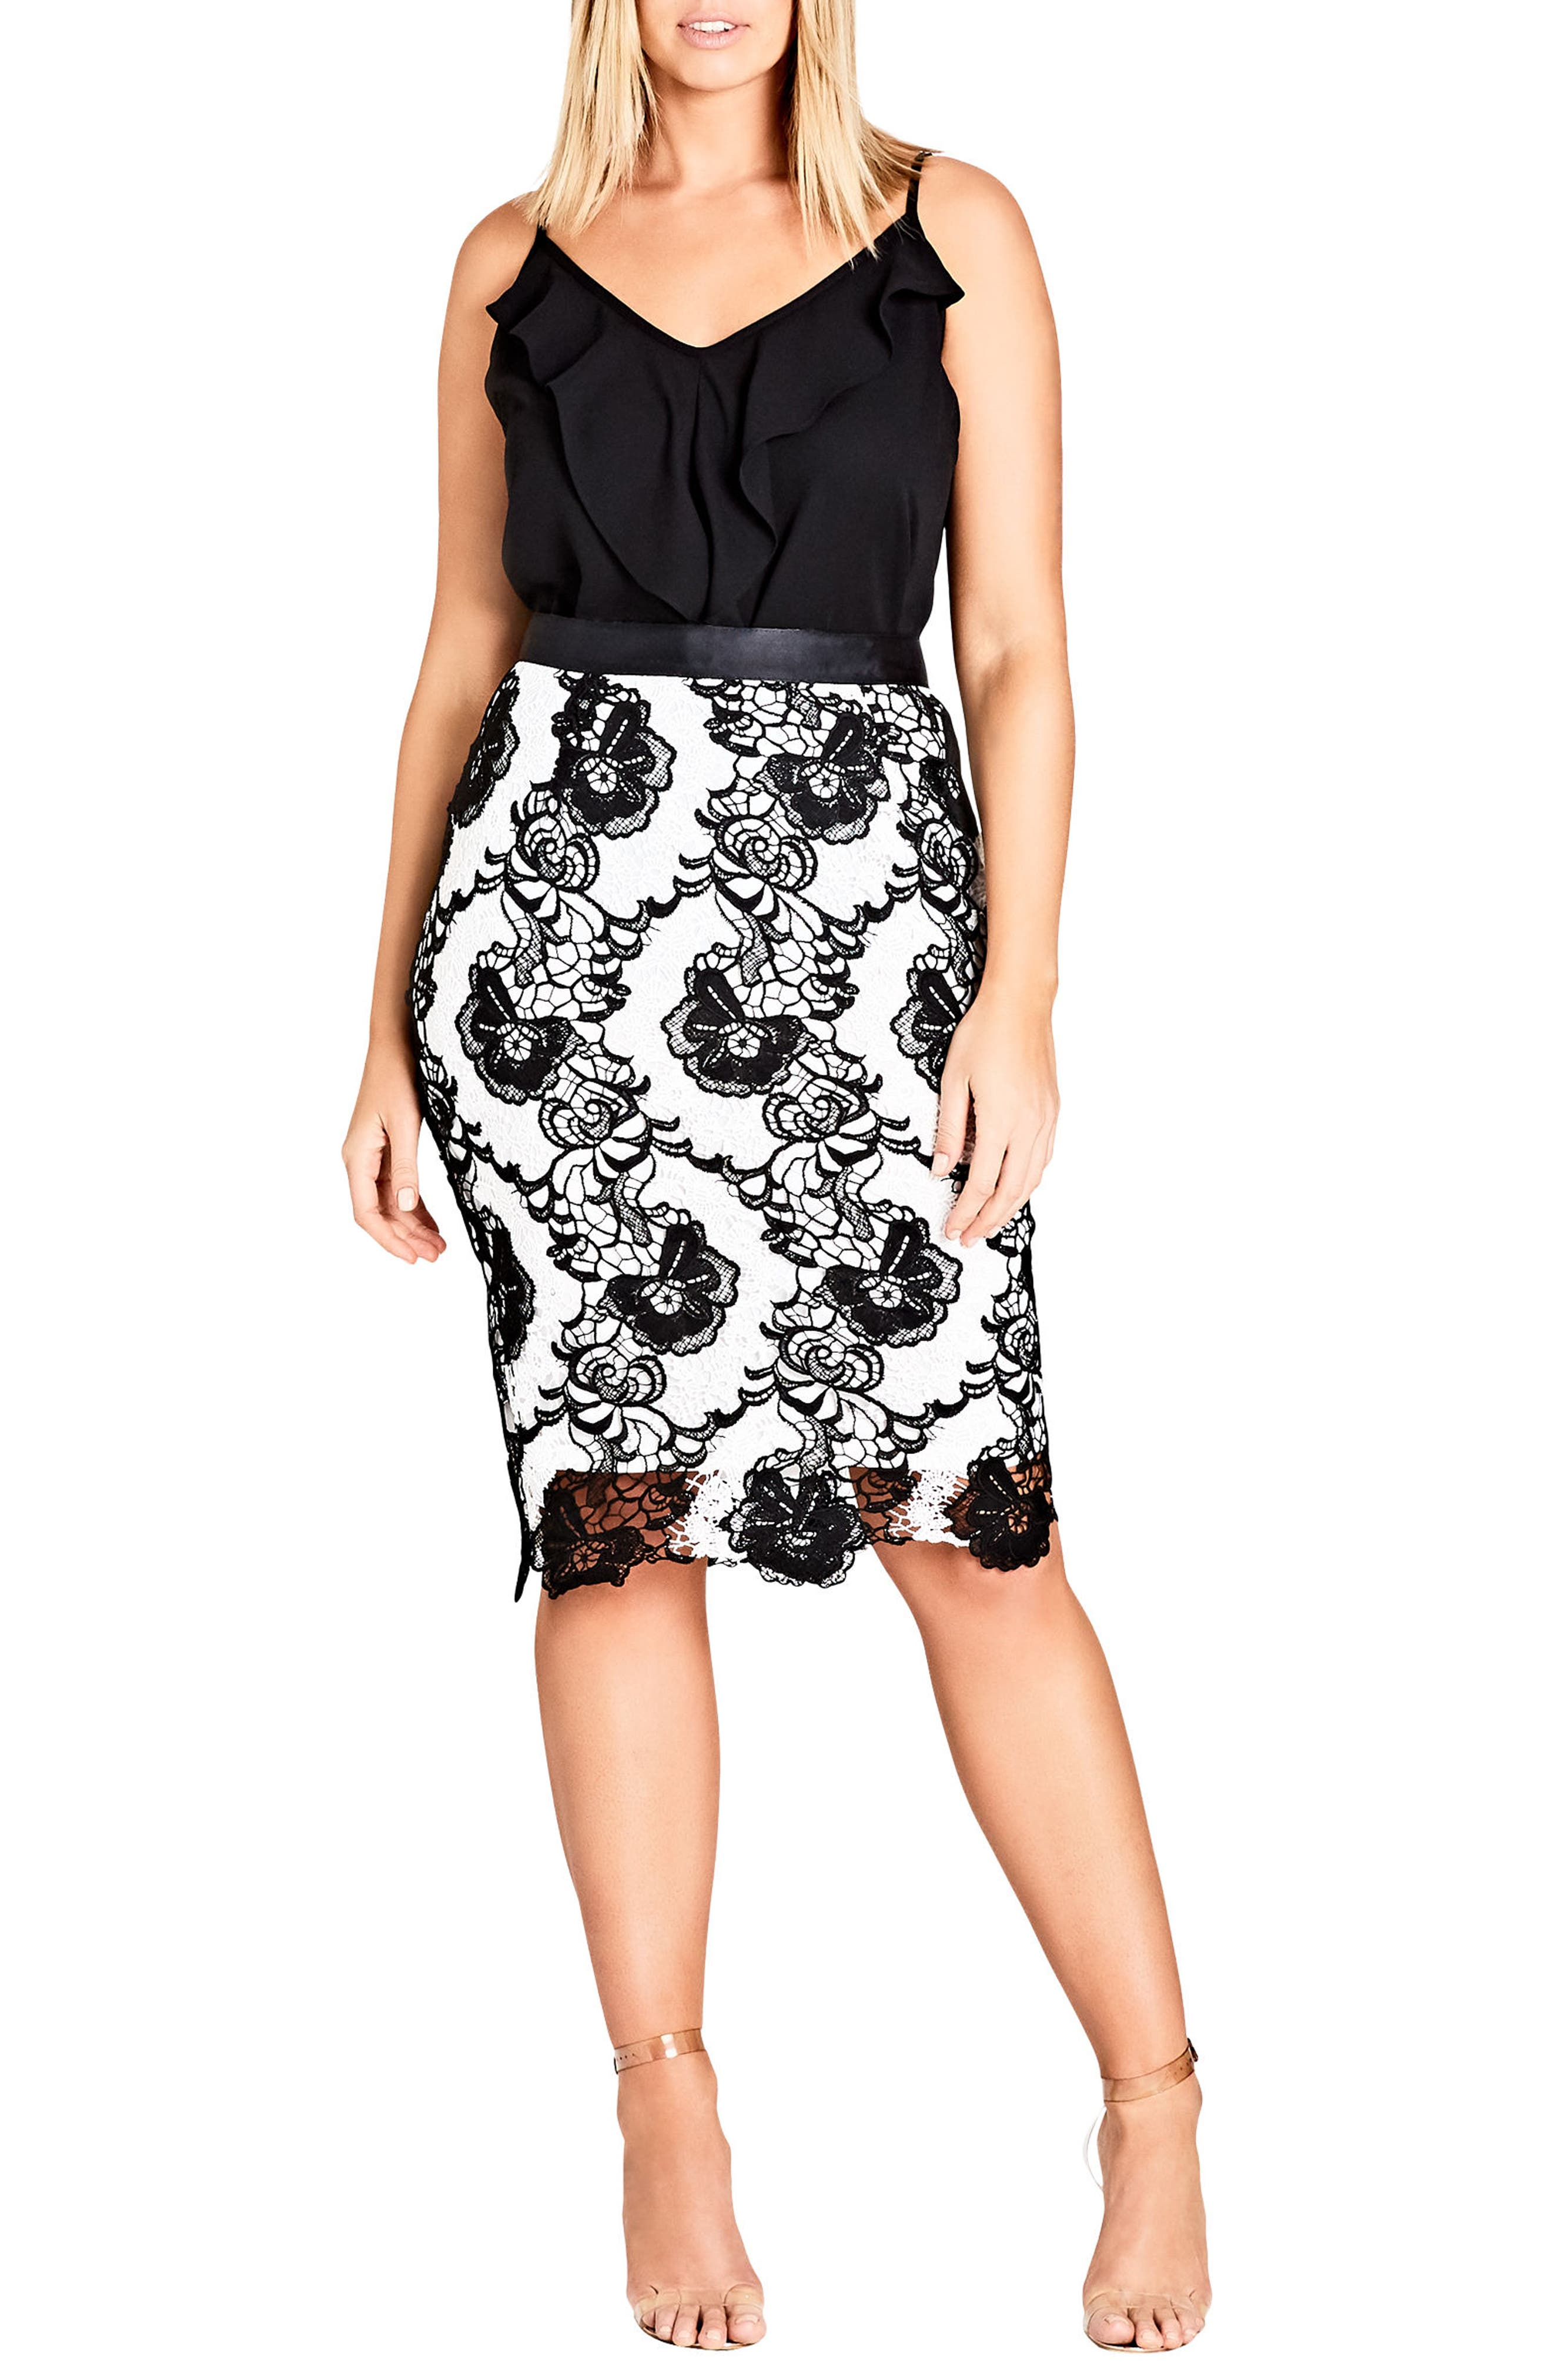 Alternate Image 1 Selected - City Chic Cha Cha Floral Embroidered Skirt (Plus Size)